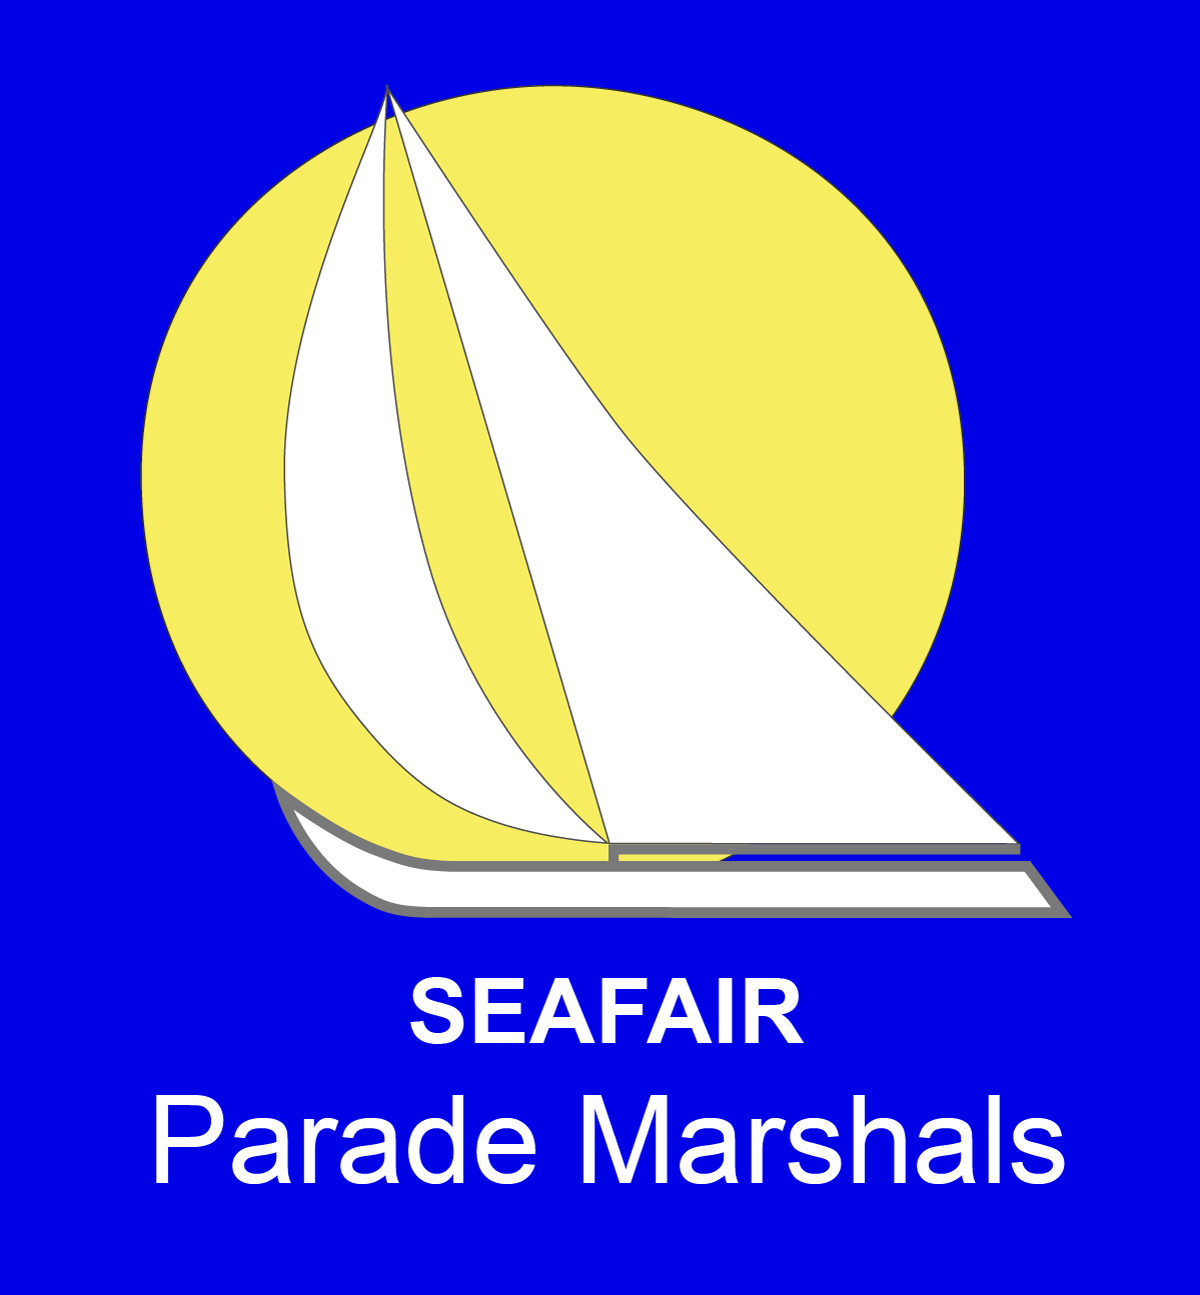 SEAFAIR Parade Marshals